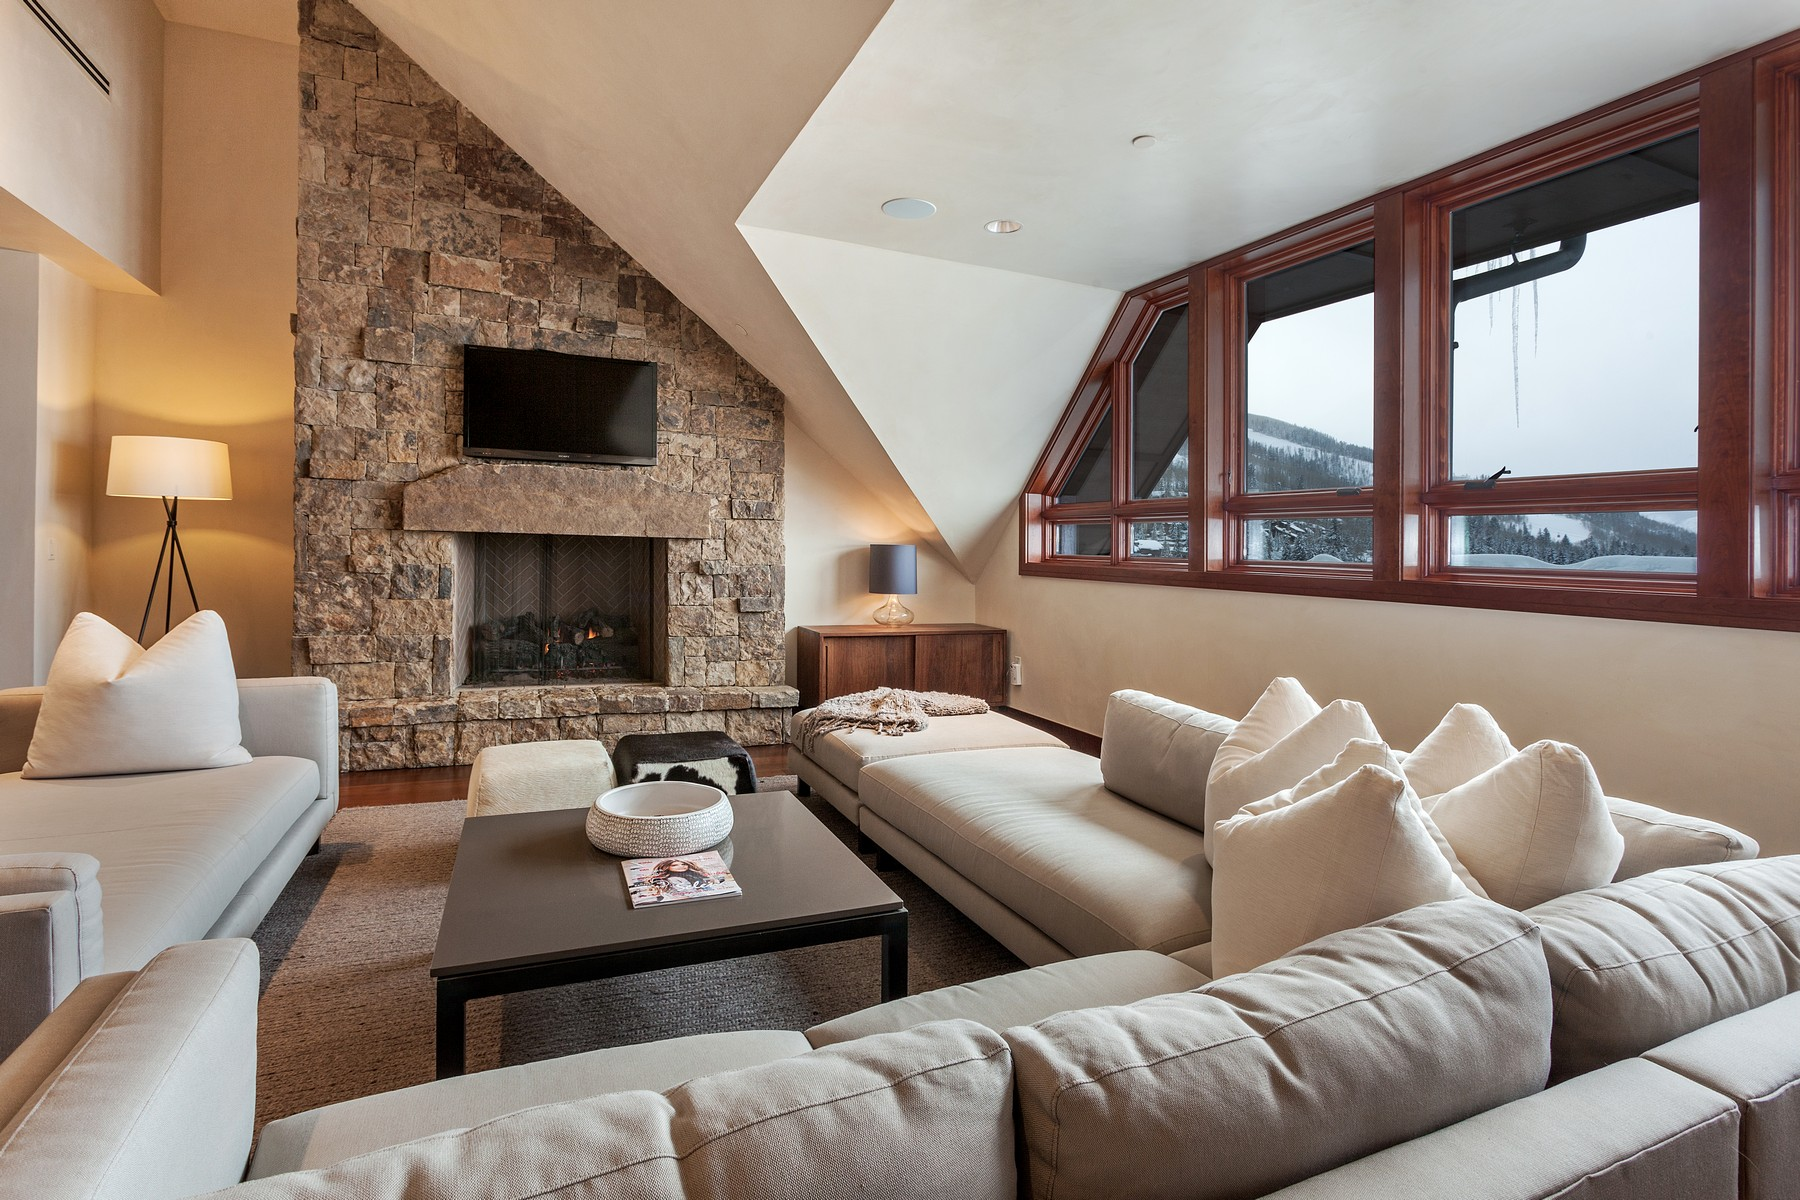 Condomínio para Venda às One of a Kind Solaris Penthouse 141 E. Meadow Drive #PH FW Vail, Colorado, 81657 Estados Unidos